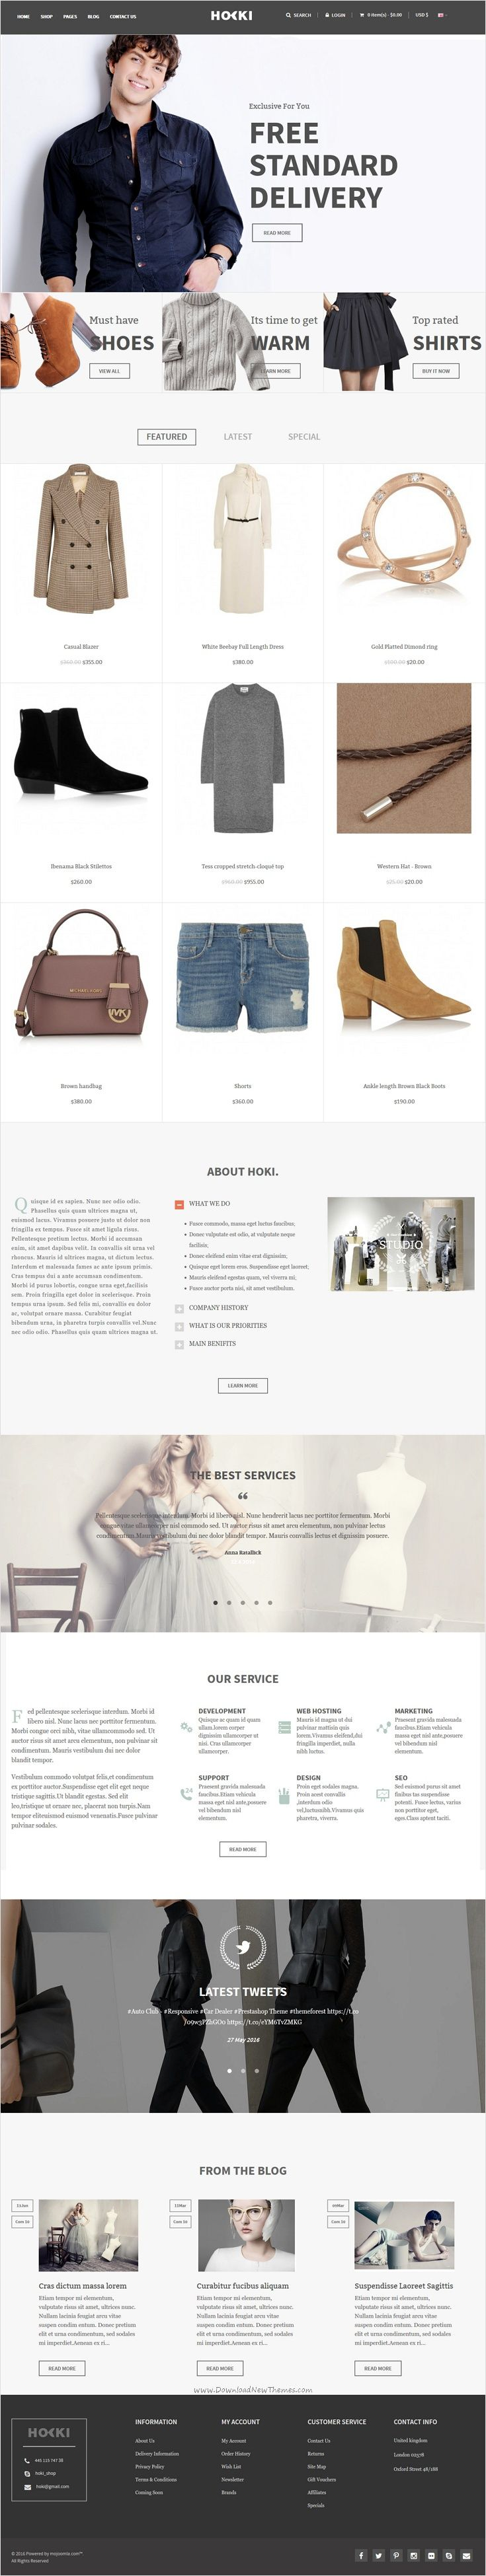 Hoki is beautifully design responsive #Opencart theme for stunning #fashion #shop eCommerce website with 5 unique homepage layouts download now➩ https://themeforest.net/item/hoki-responsive-opencart-theme/18445173?ref=Datasata